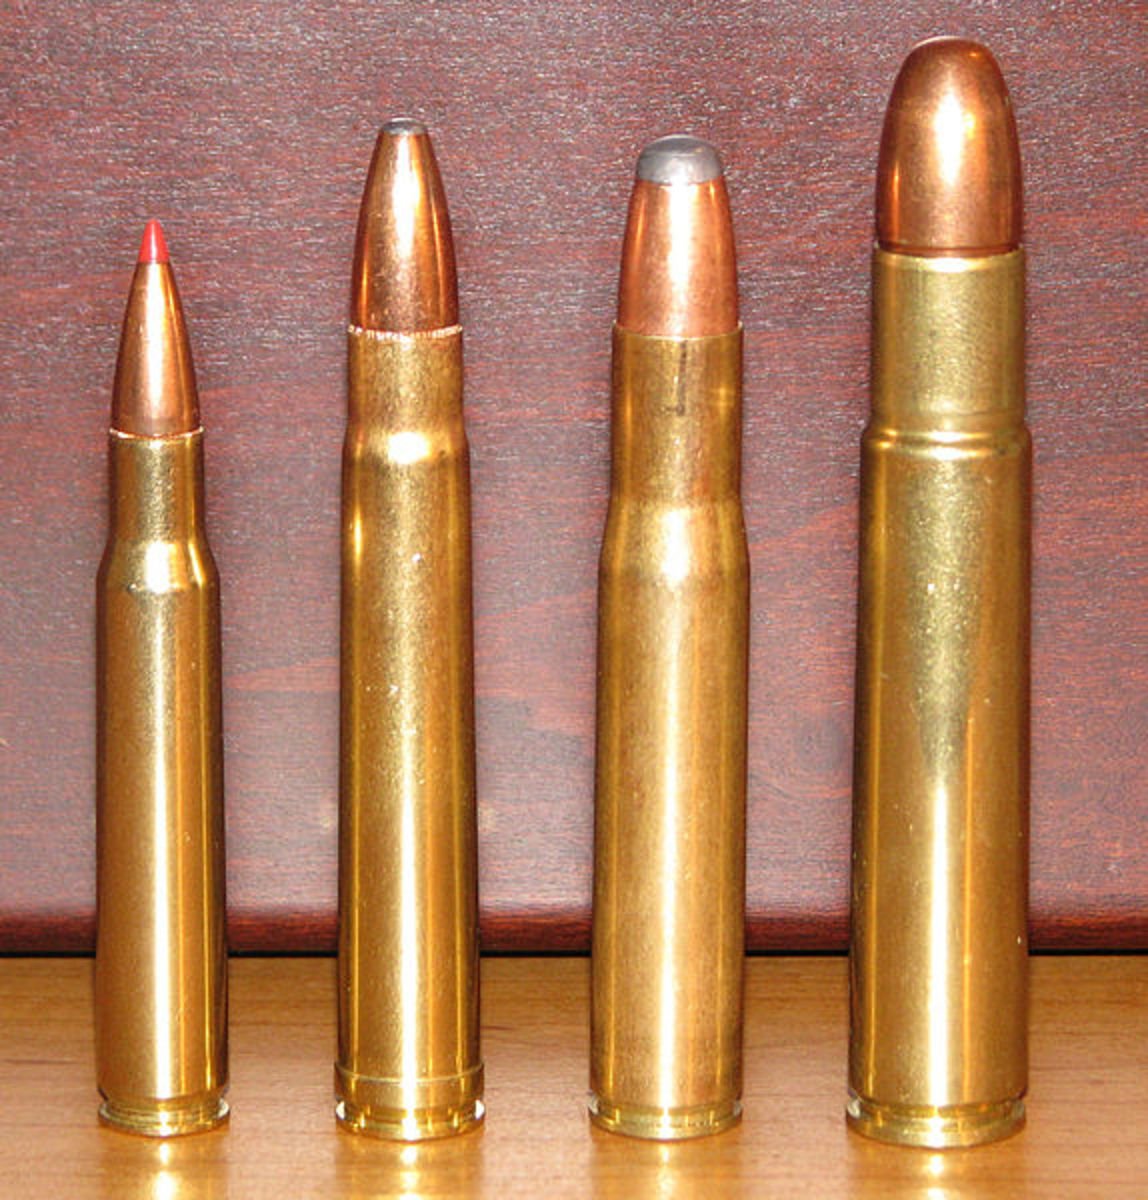 (L-R): .30-06, .375 H&H, .404 Jeffery, .505 Gibbs